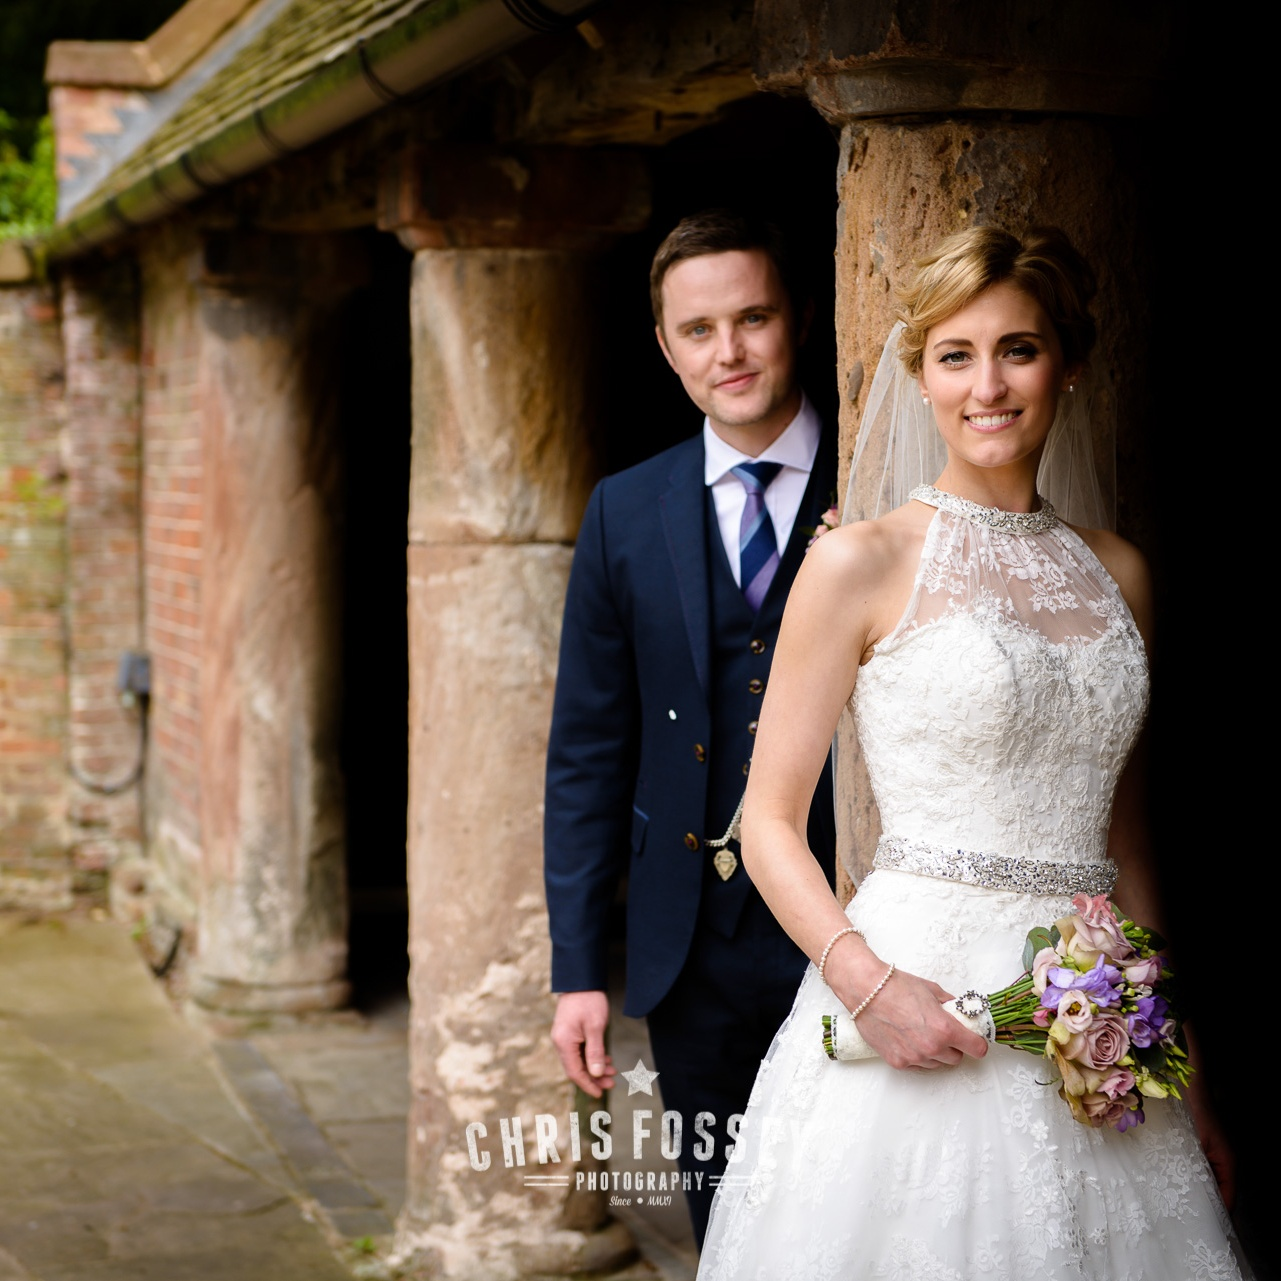 Warwickshire Wedding Photography Portfolio-Shustoke Barns Wedding Photography by Chris Fossey Photography (2)-19